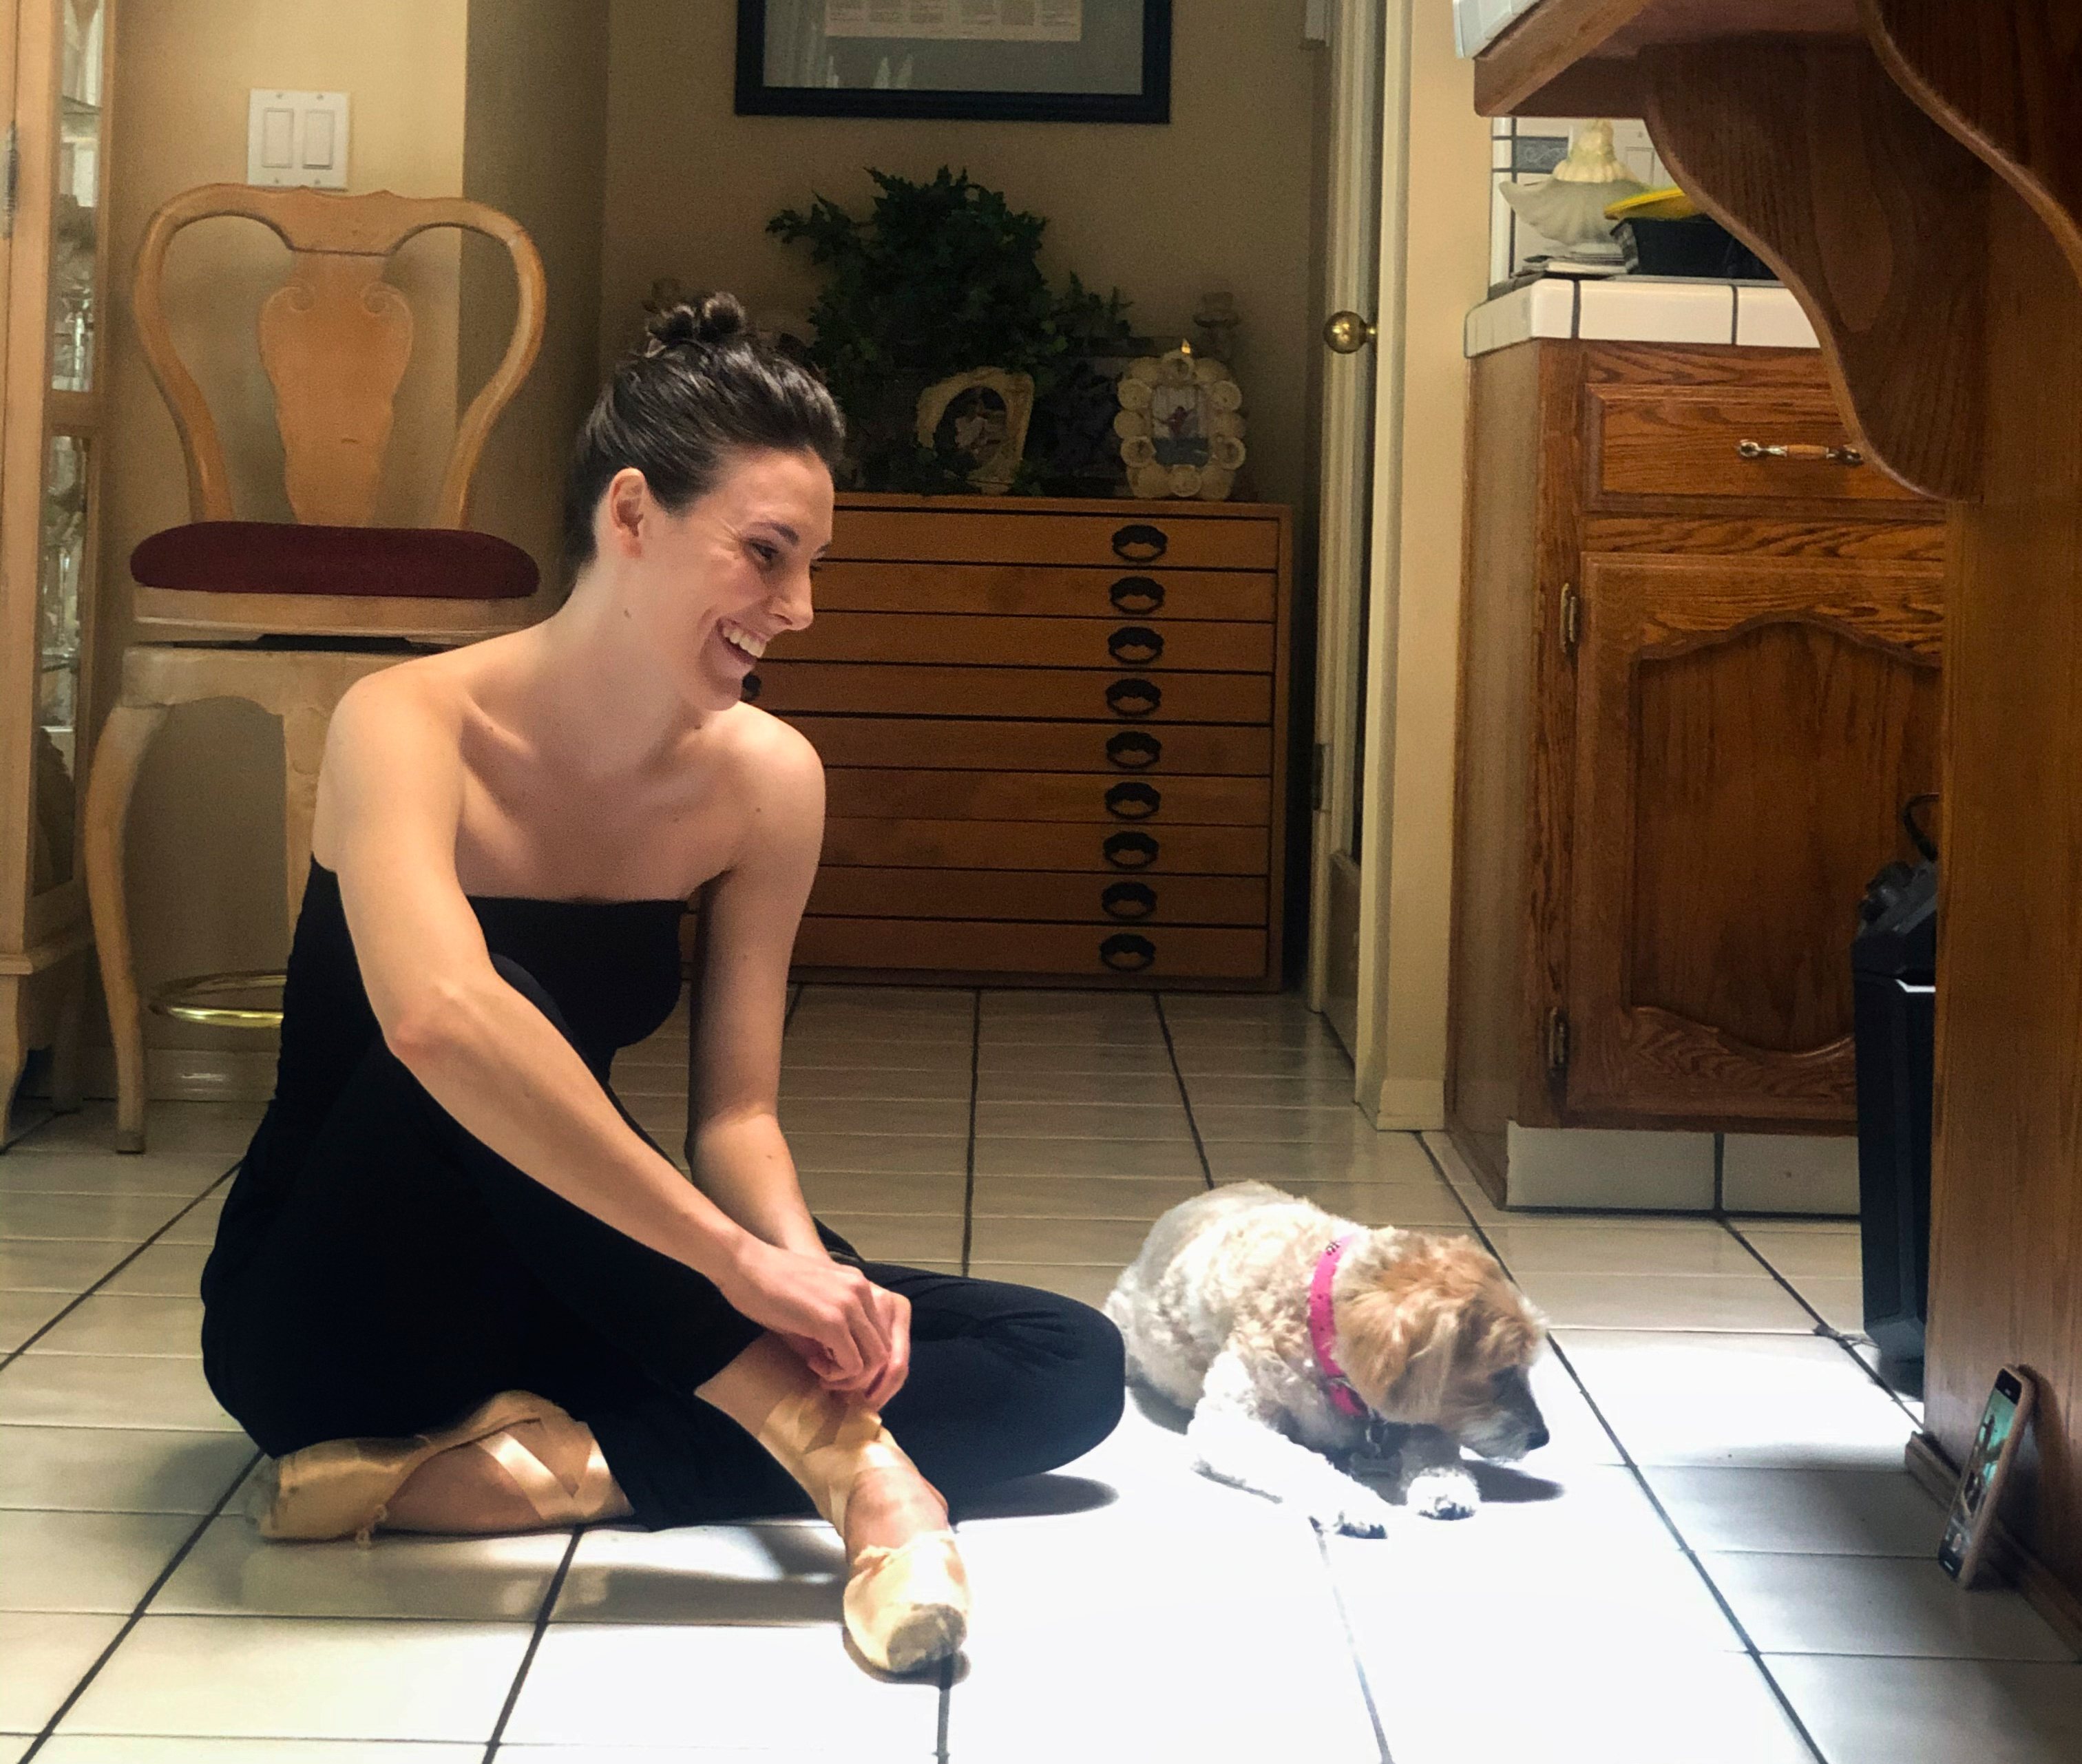 Tiler Peck's Top 10 Tips for Training at Home